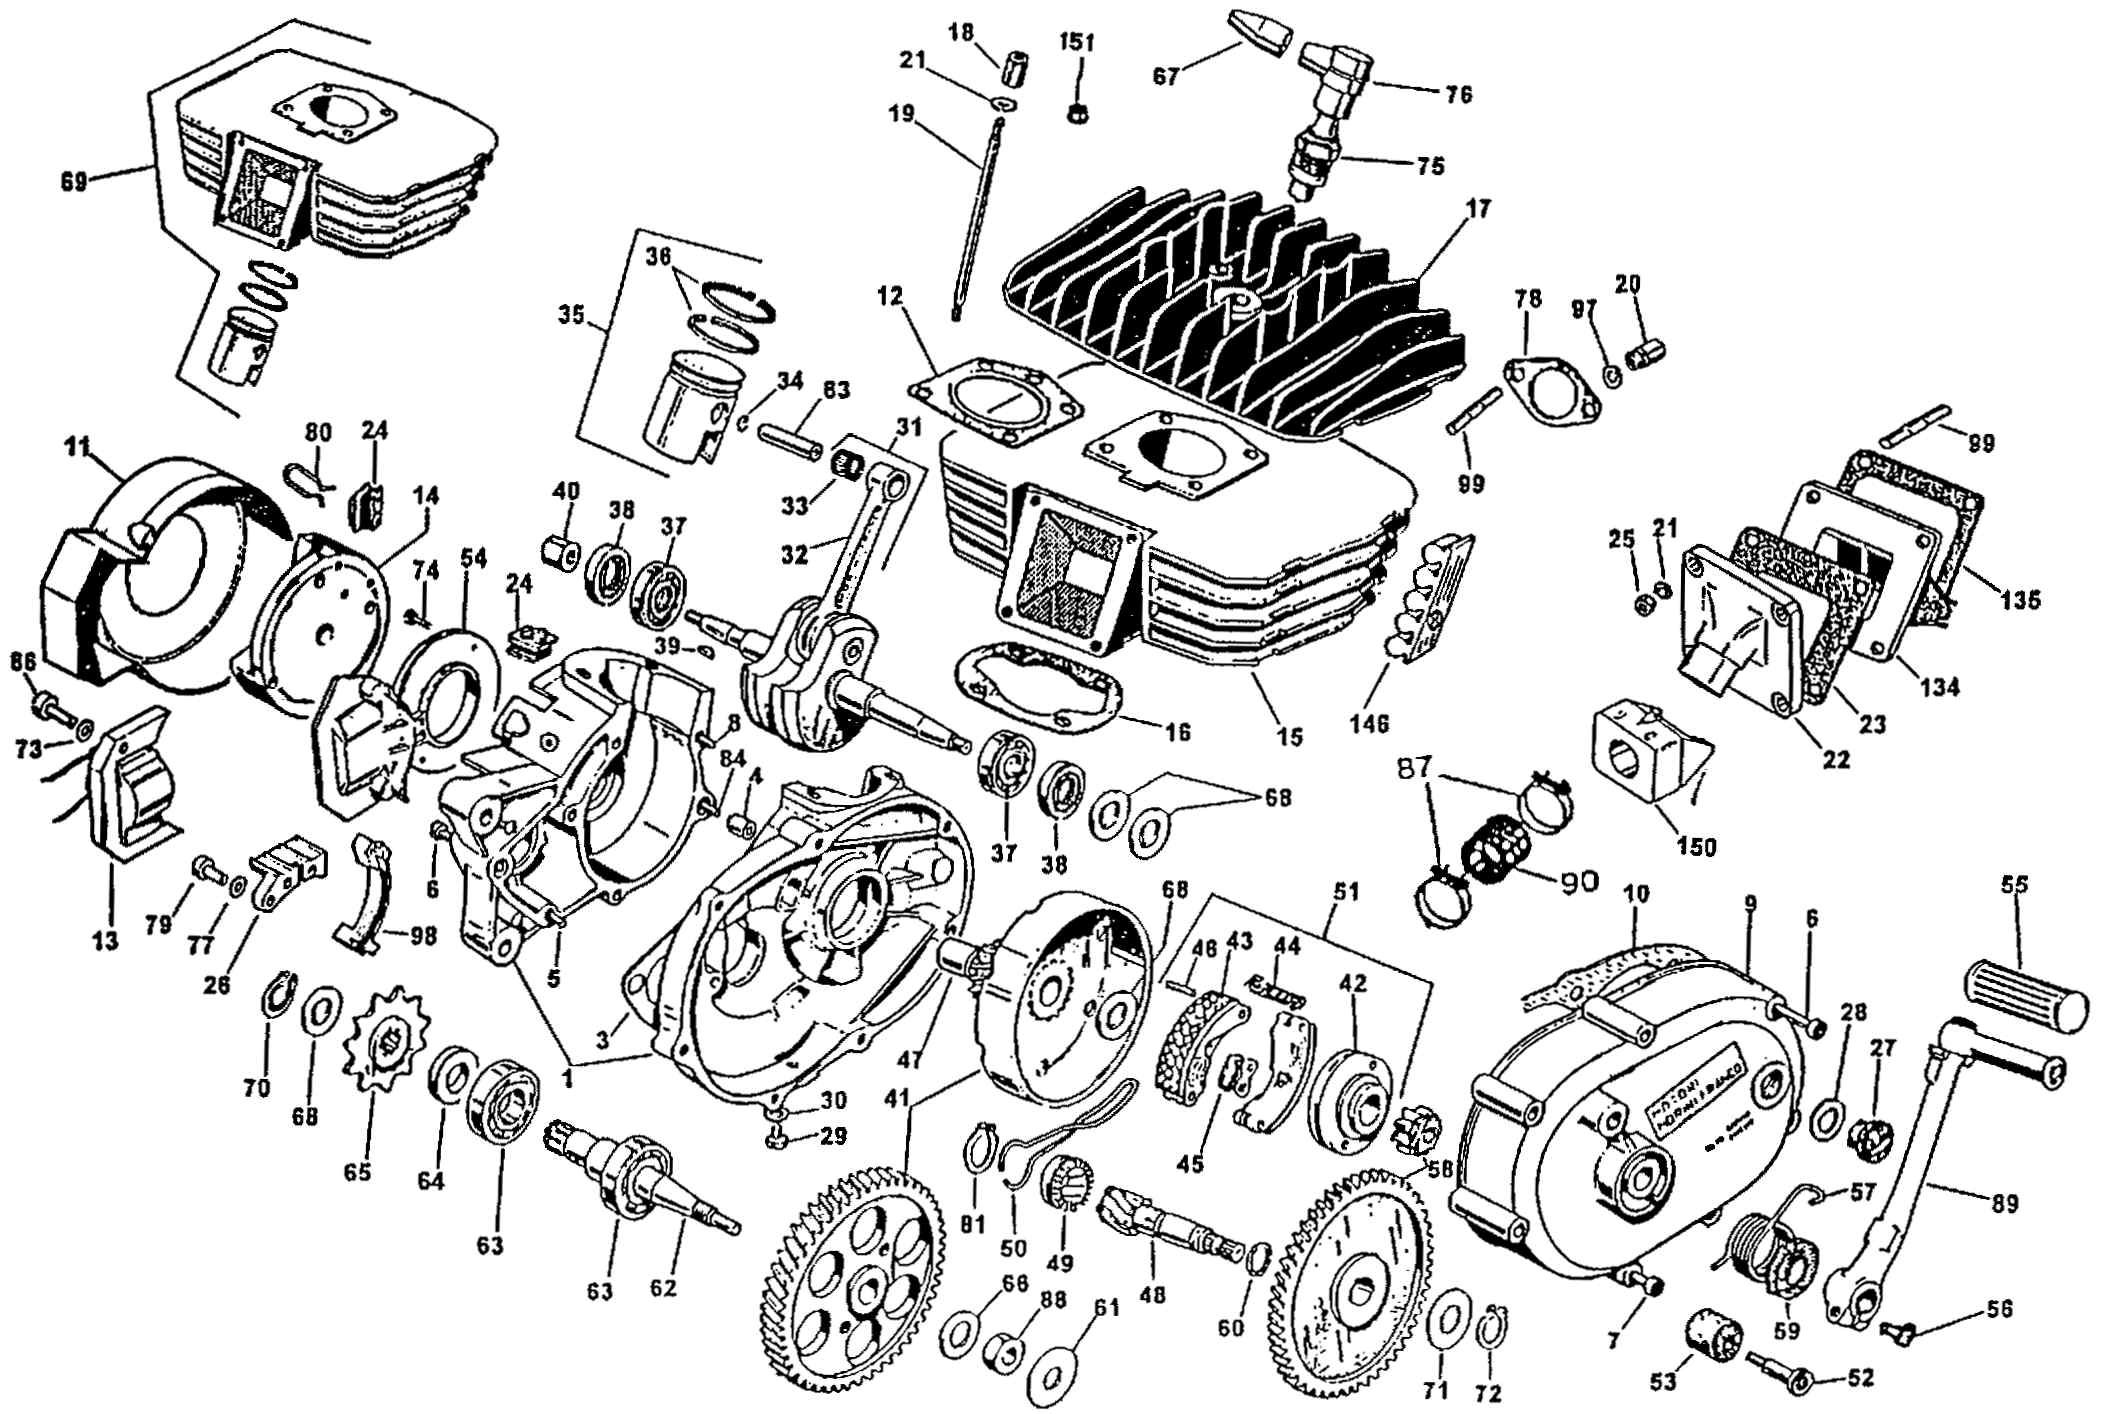 marine engine parts further ducati engine diagram besides 50cc scooter